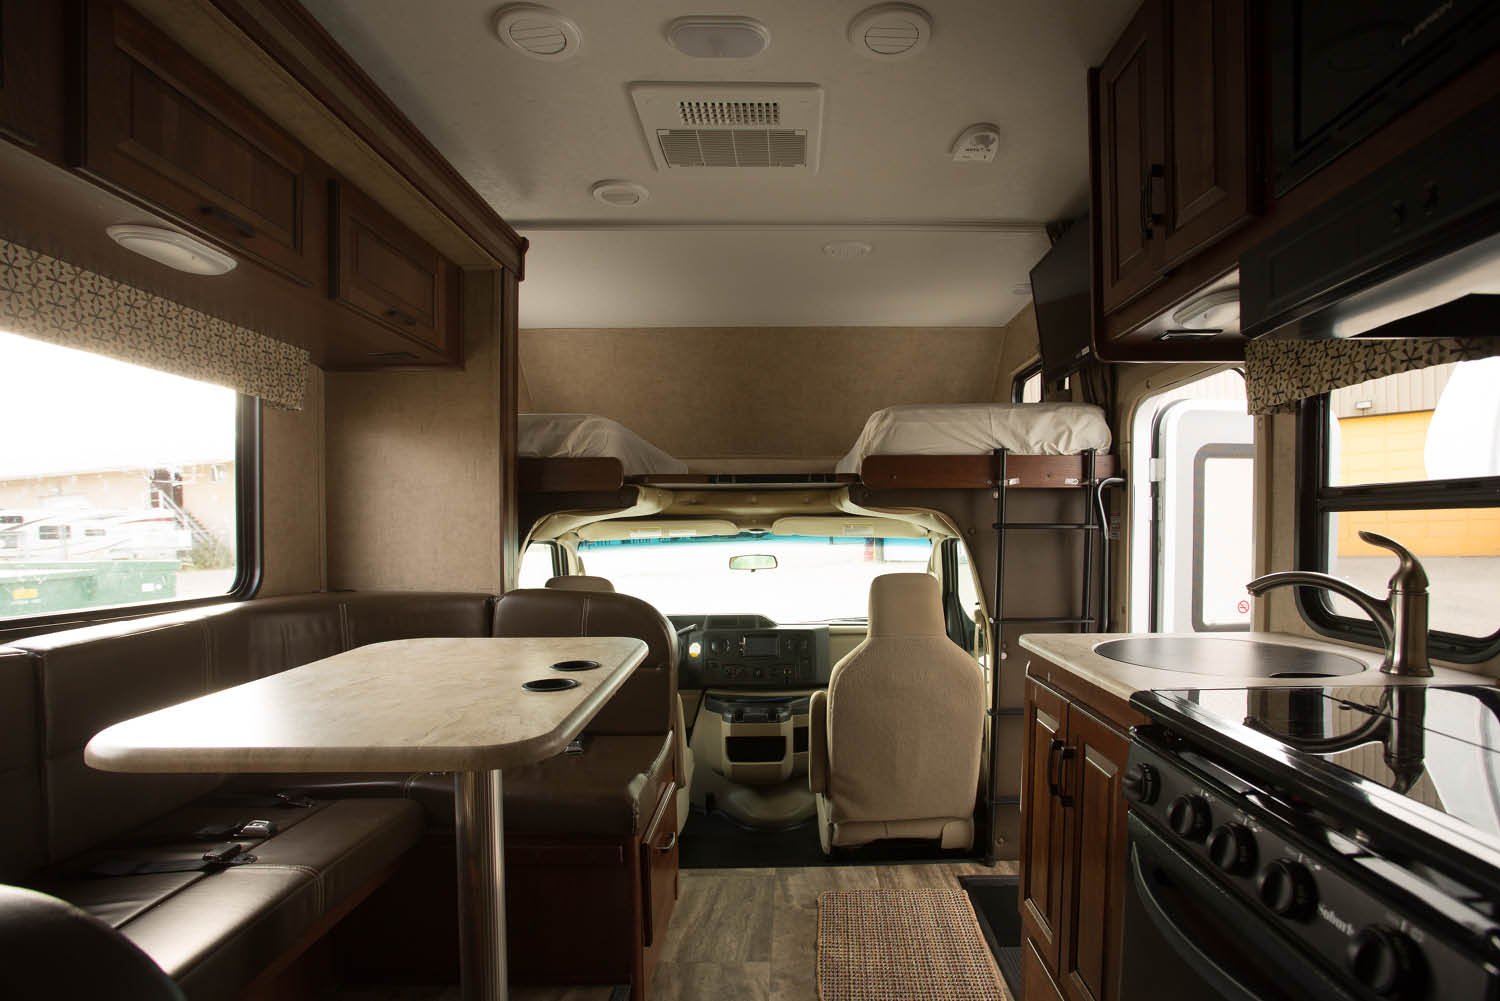 What's inside a rental RV